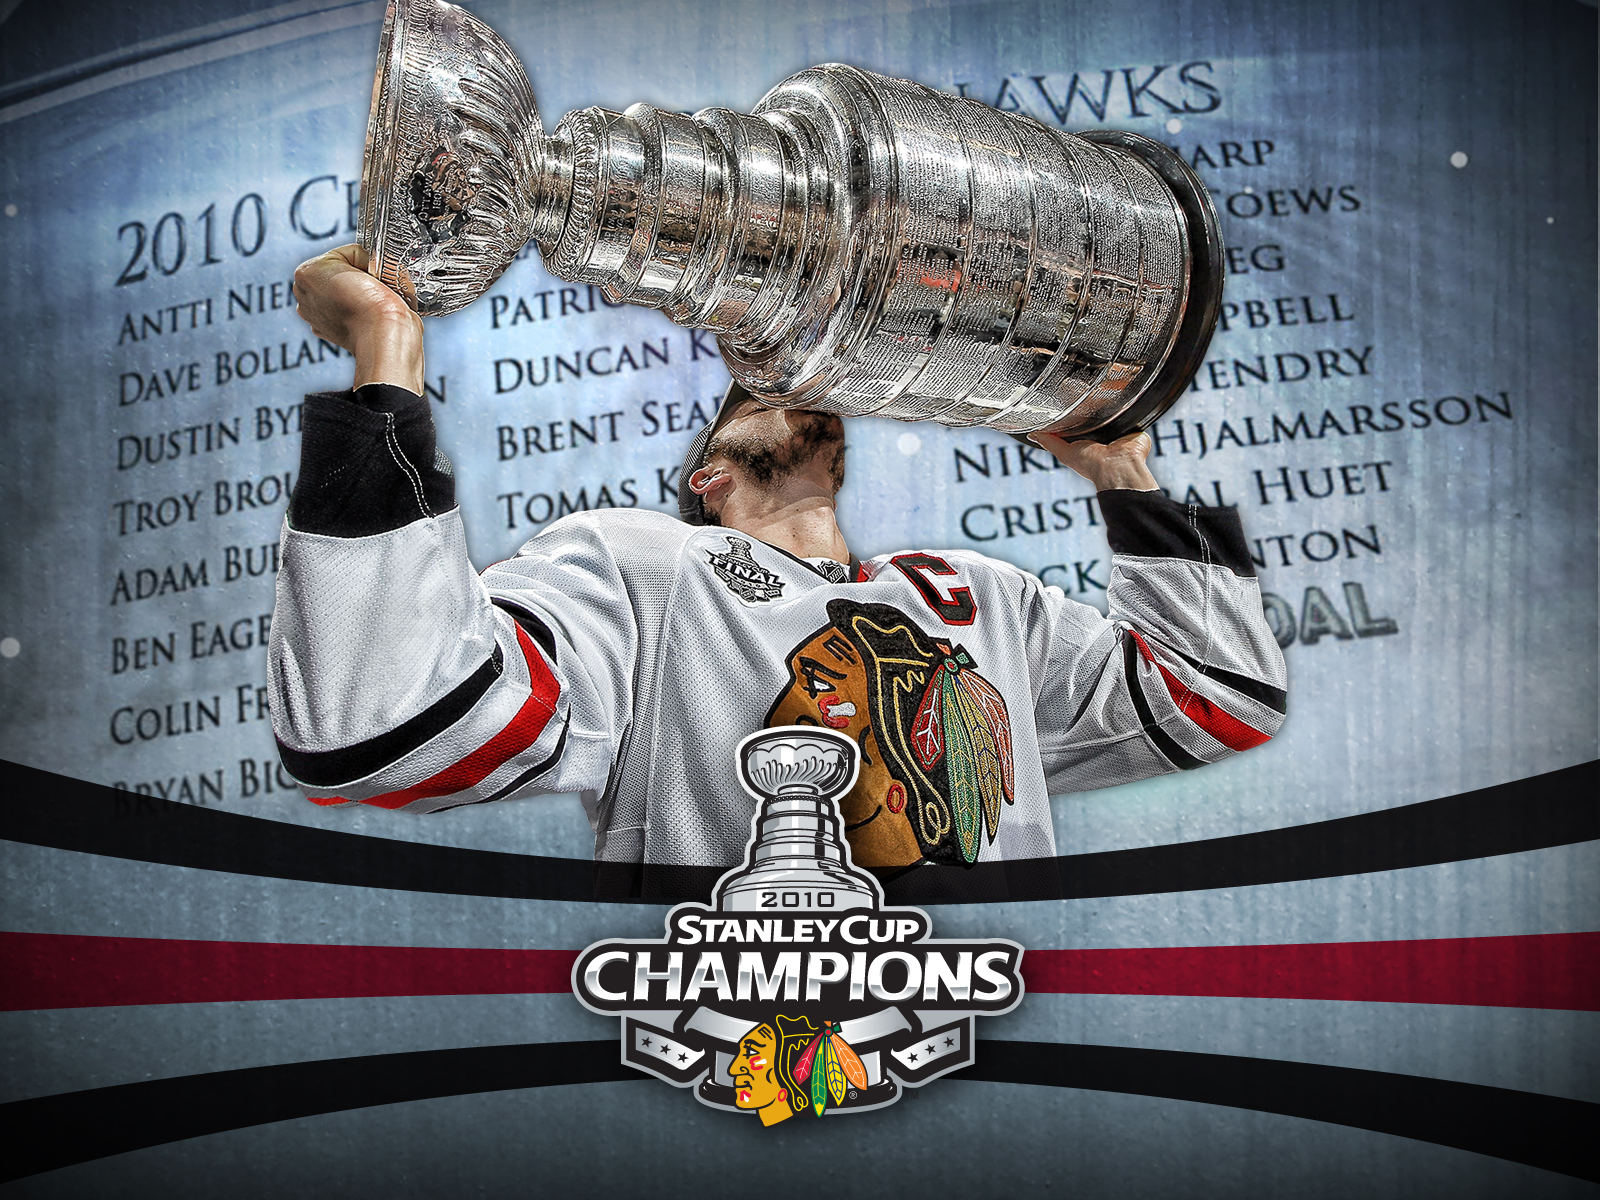 widescreen stanley cup champs widescreen stanley cup champs toews 1600x1200